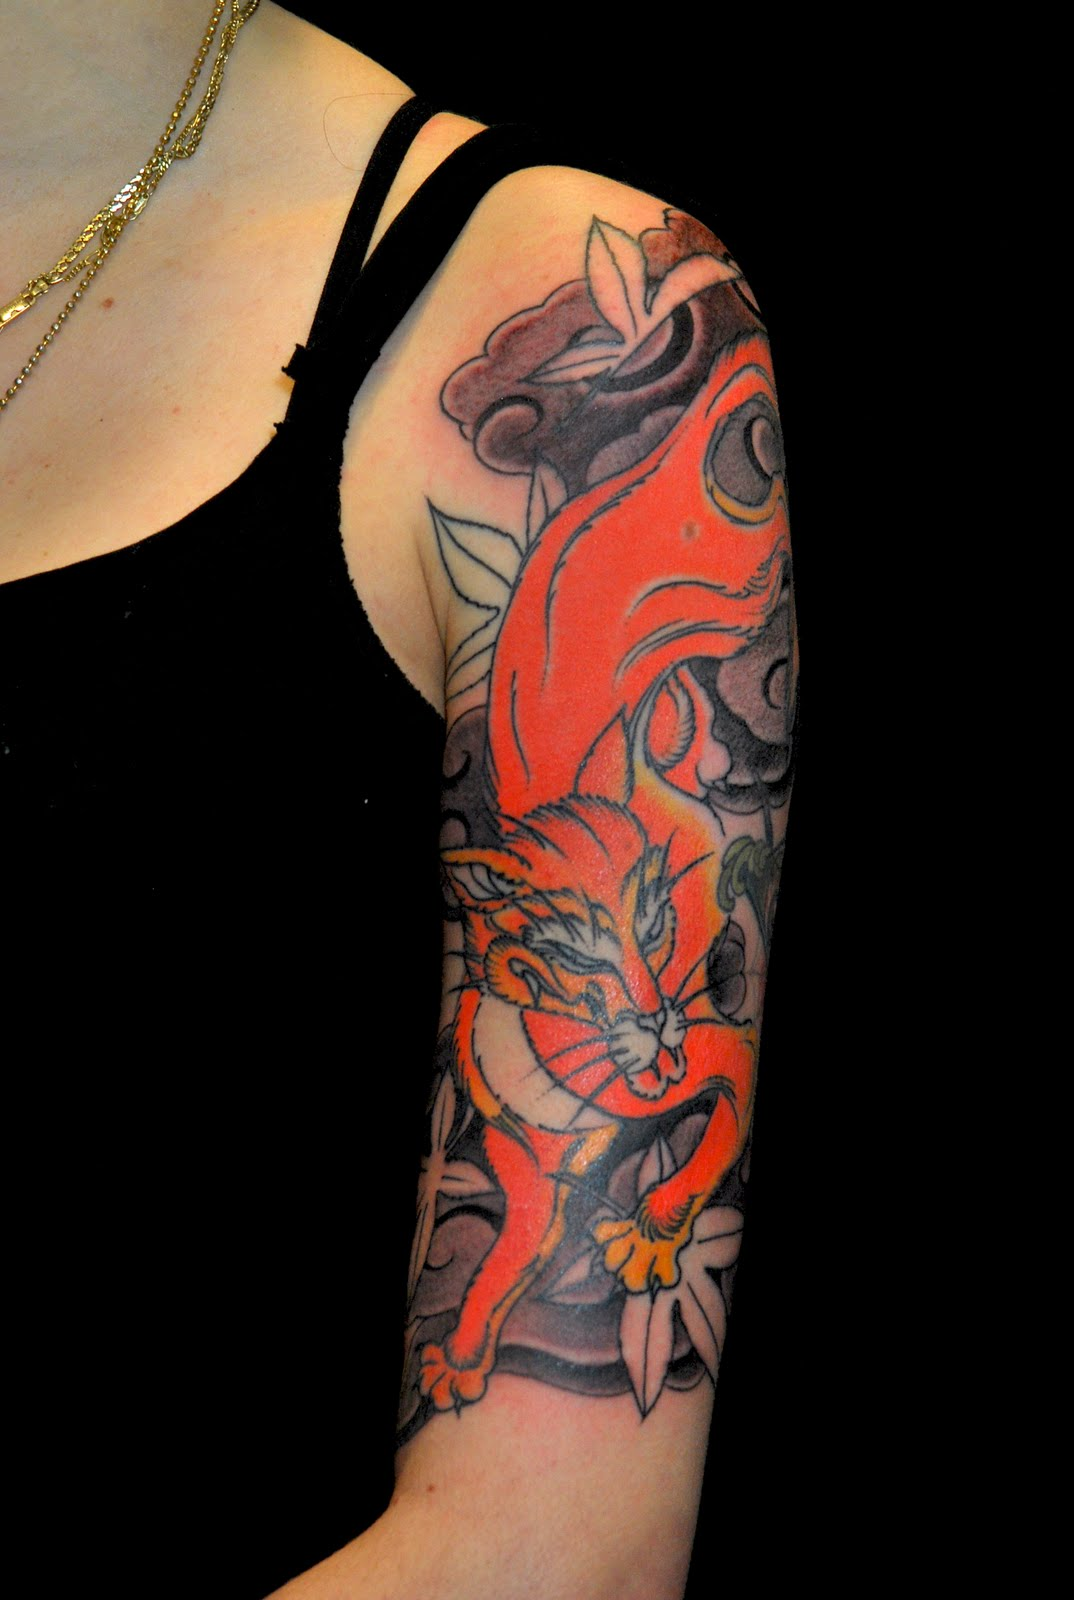 Traditional Kitsune Tattoo: Kitsune Tattoo Idea